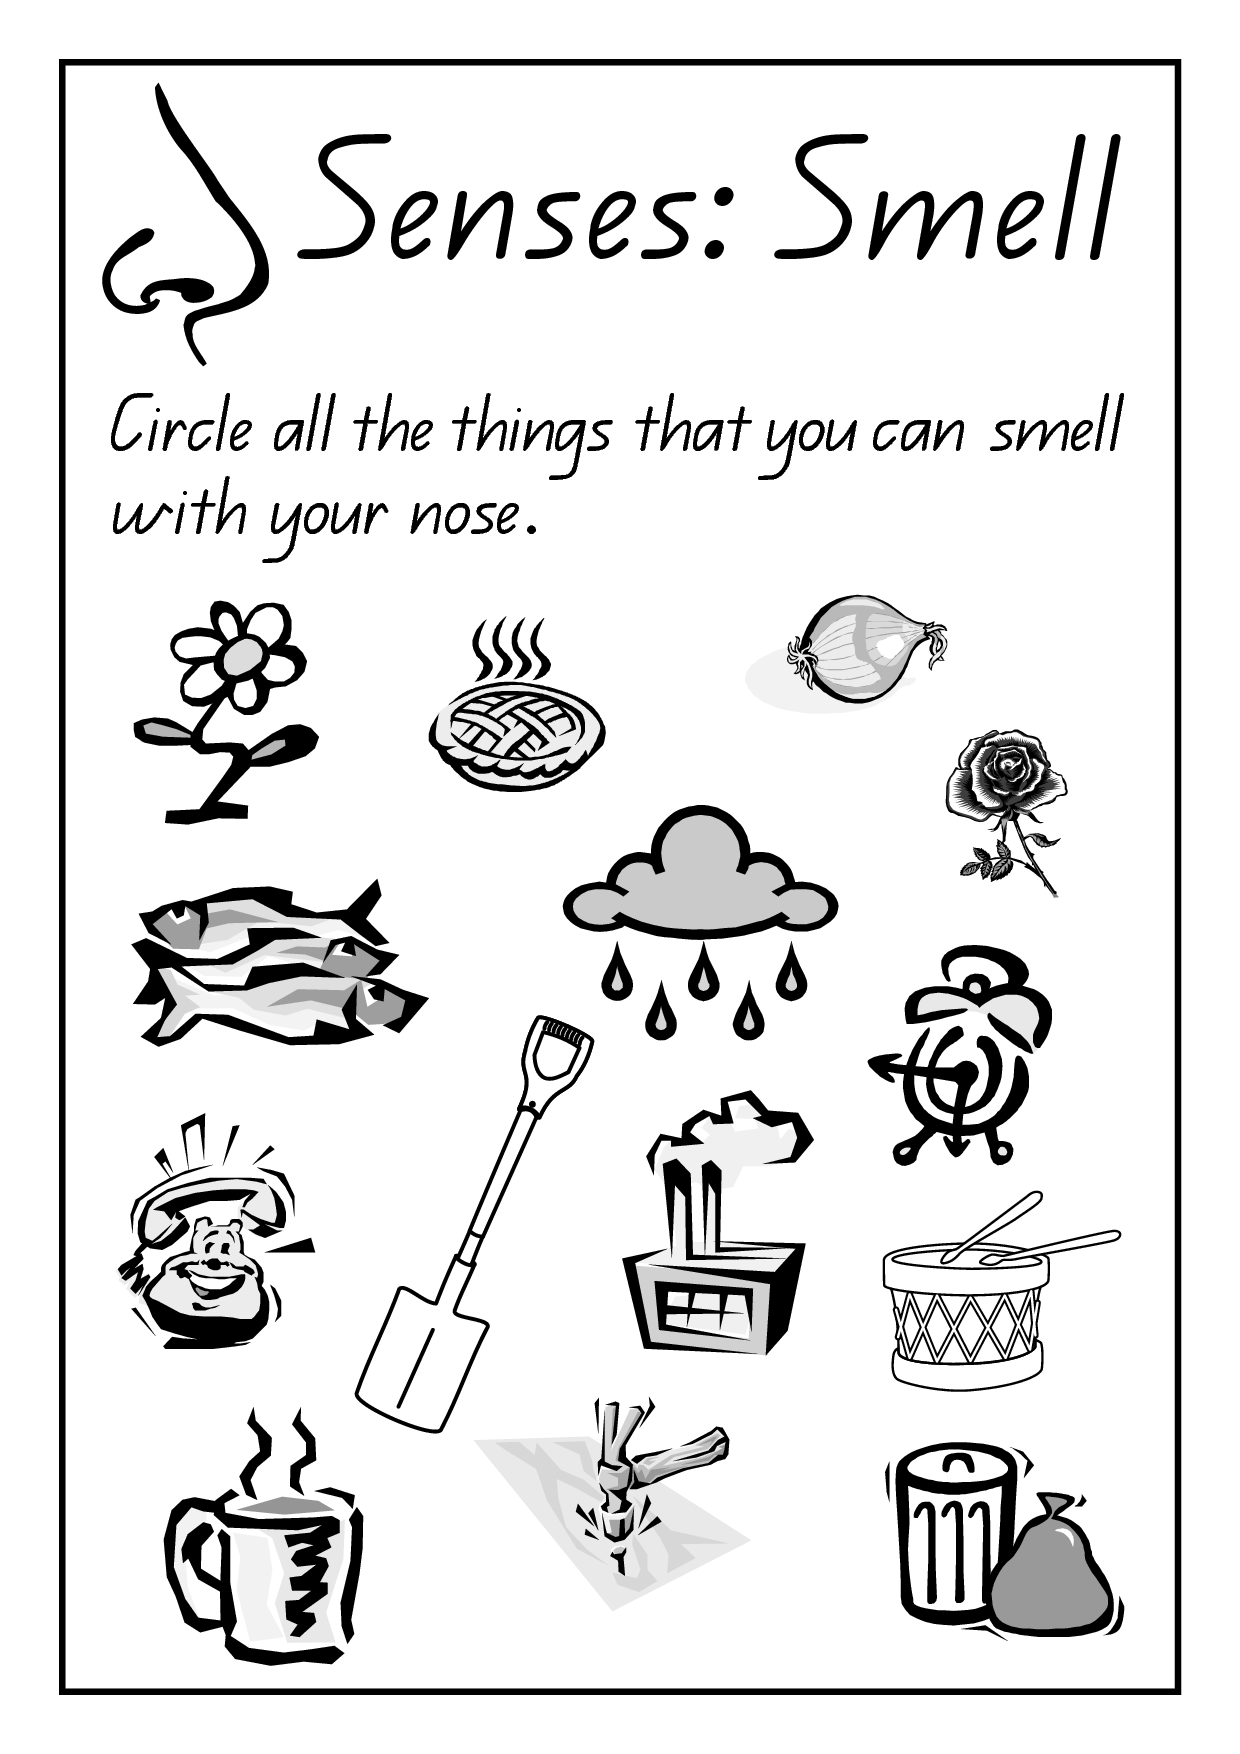 Printable Science Worksheet For Preschool 5 Senses